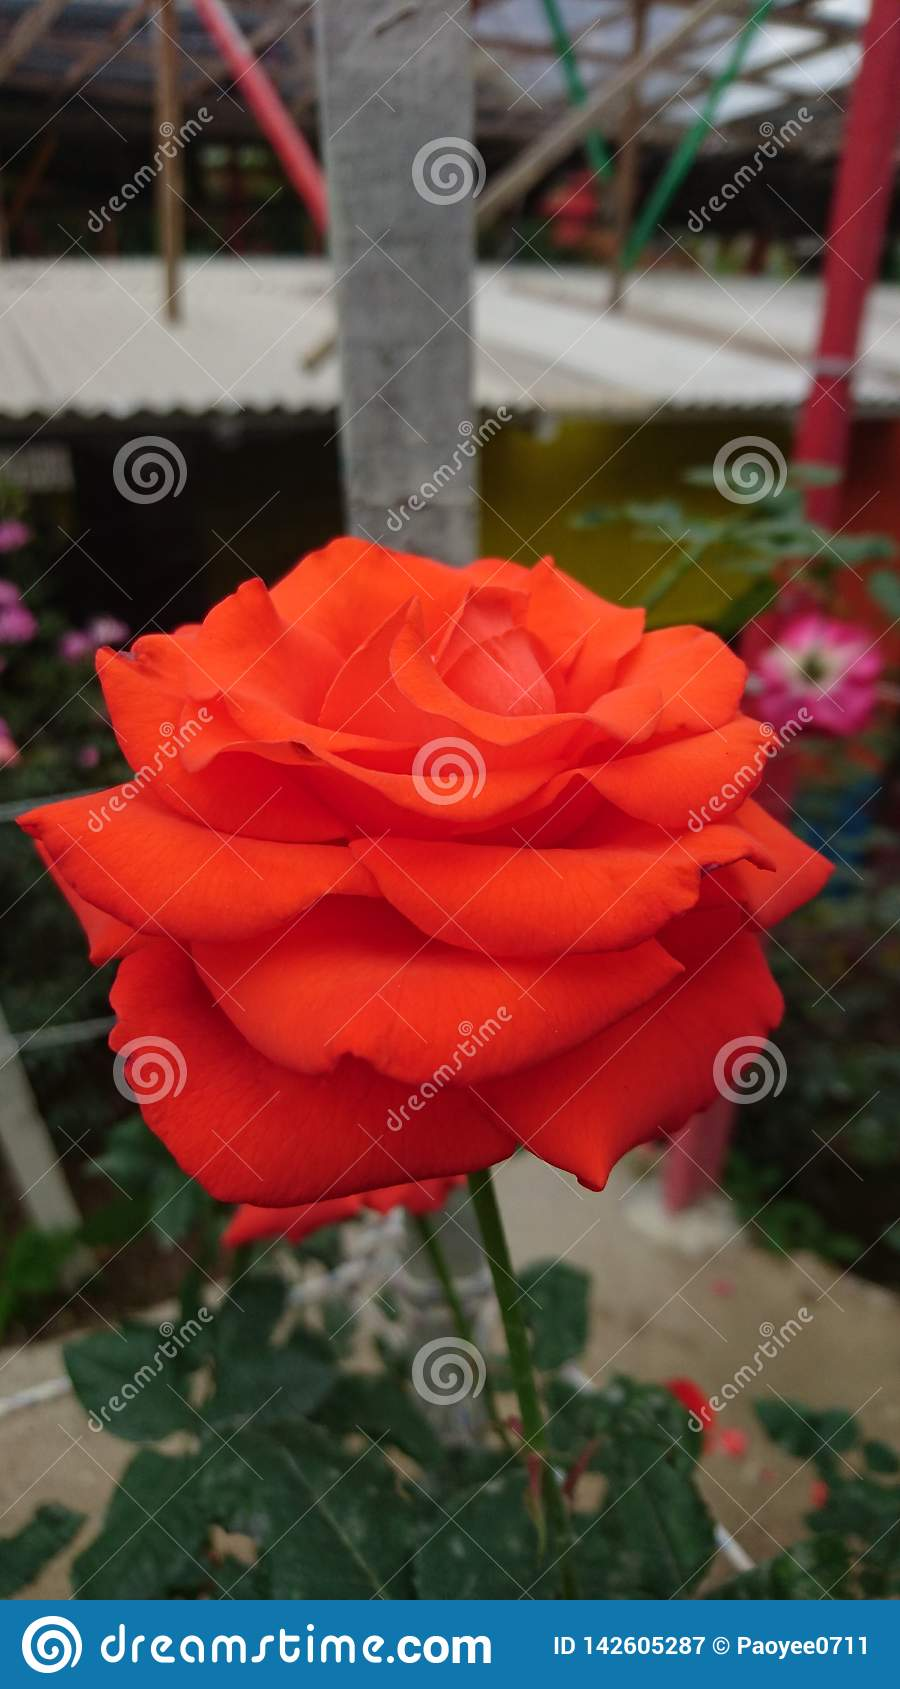 A big freshly red rose